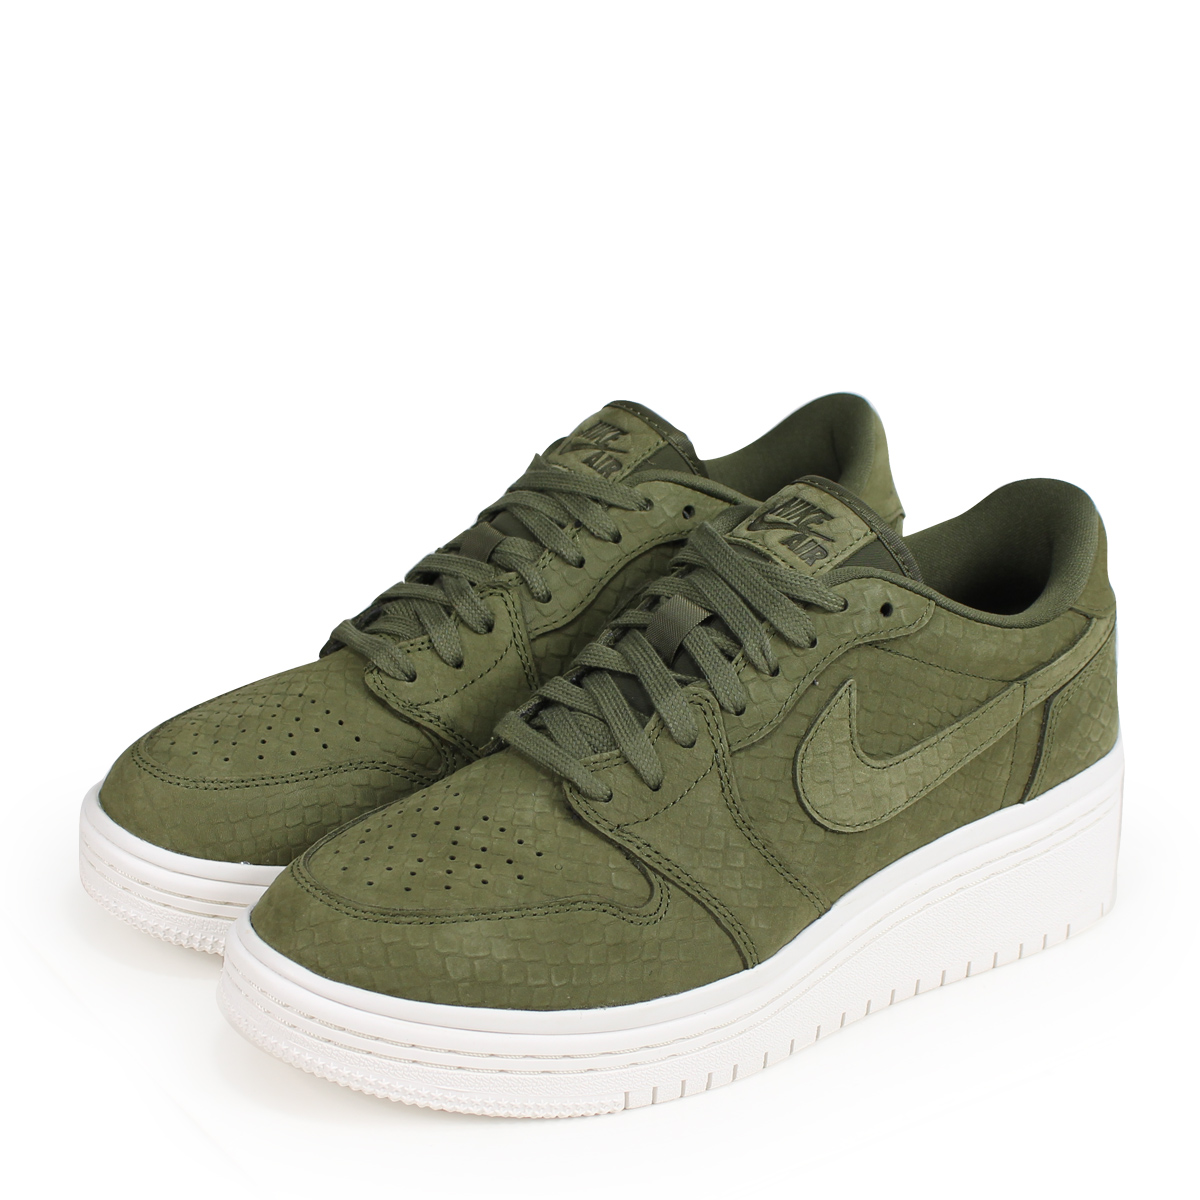 best authentic d7909 bc8b8 NIKE WMNS AIR JORDAN 1 RETRO LOW LIFTED Nike Air Jordan 1 nostalgic lady s  men sneakers AO1334-300 olive  load planned Shinnyu load in reservation  product ...